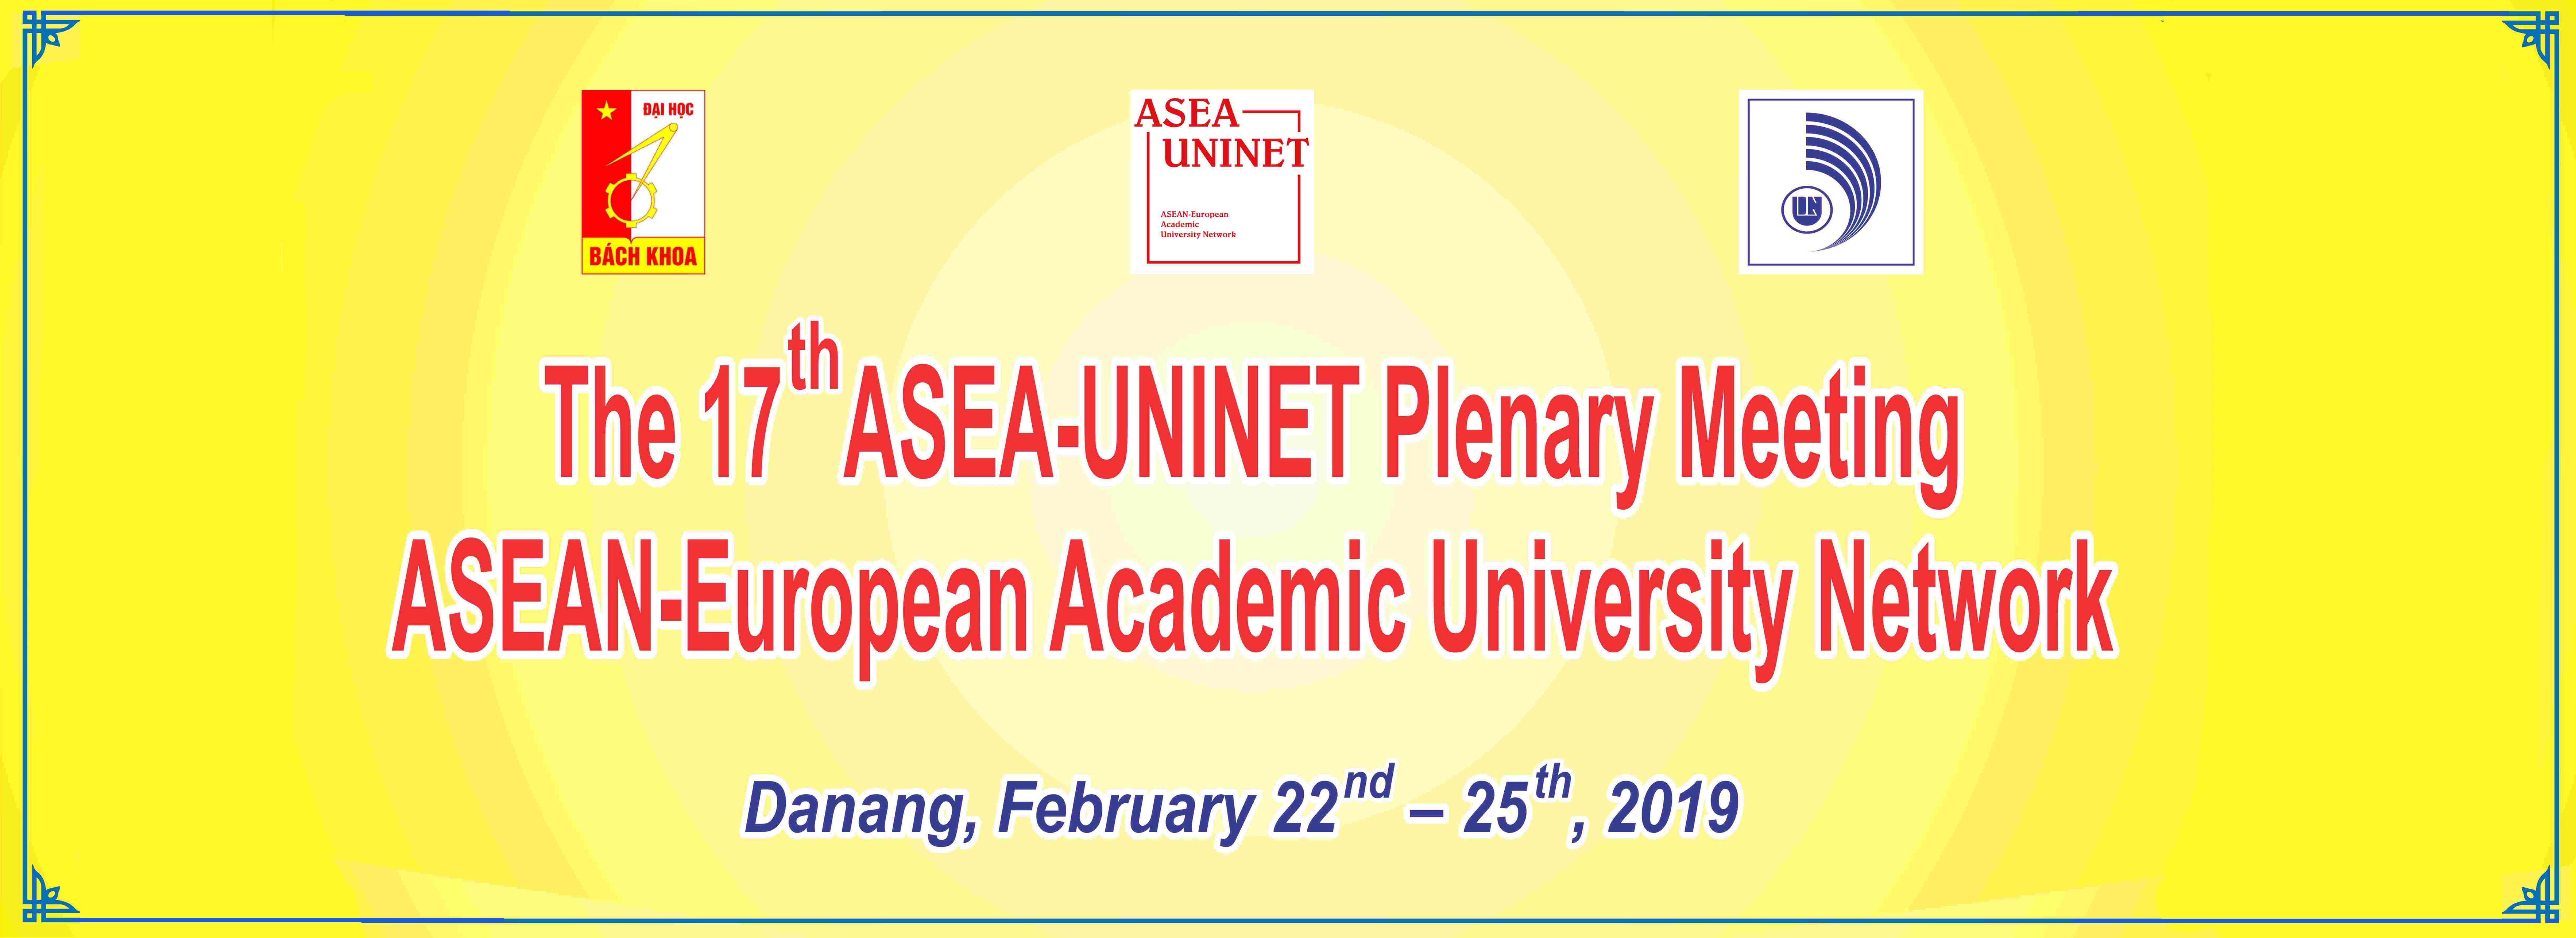 plenary-meeting-2019-banner-website